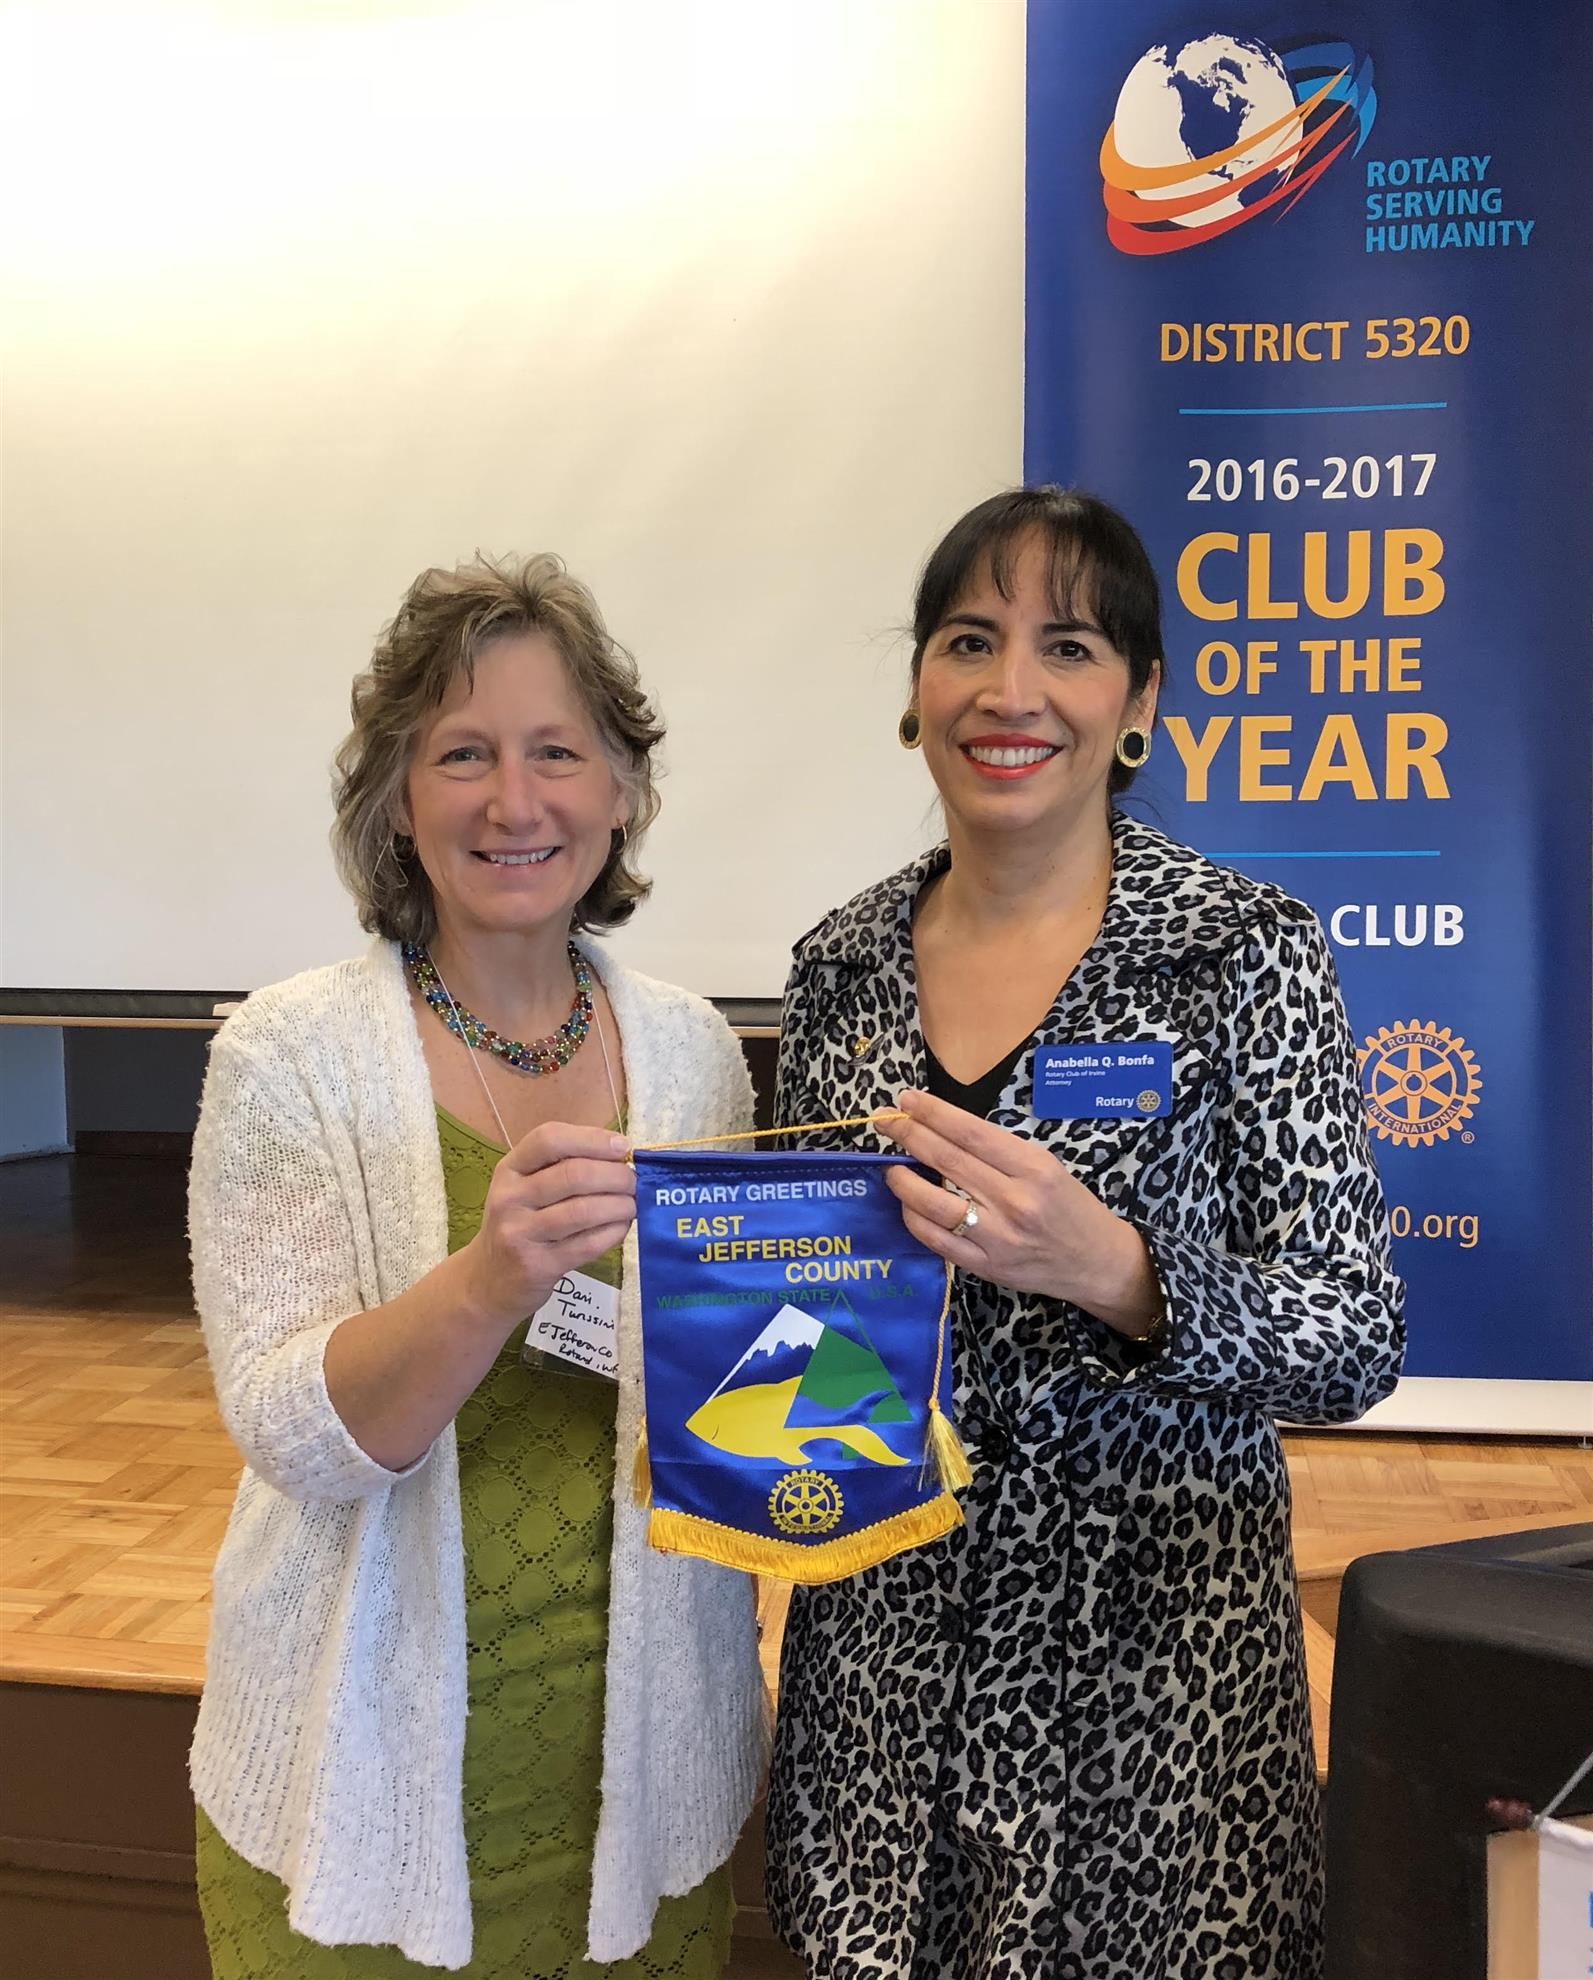 Dani Turissini at Irvine Rotary Club